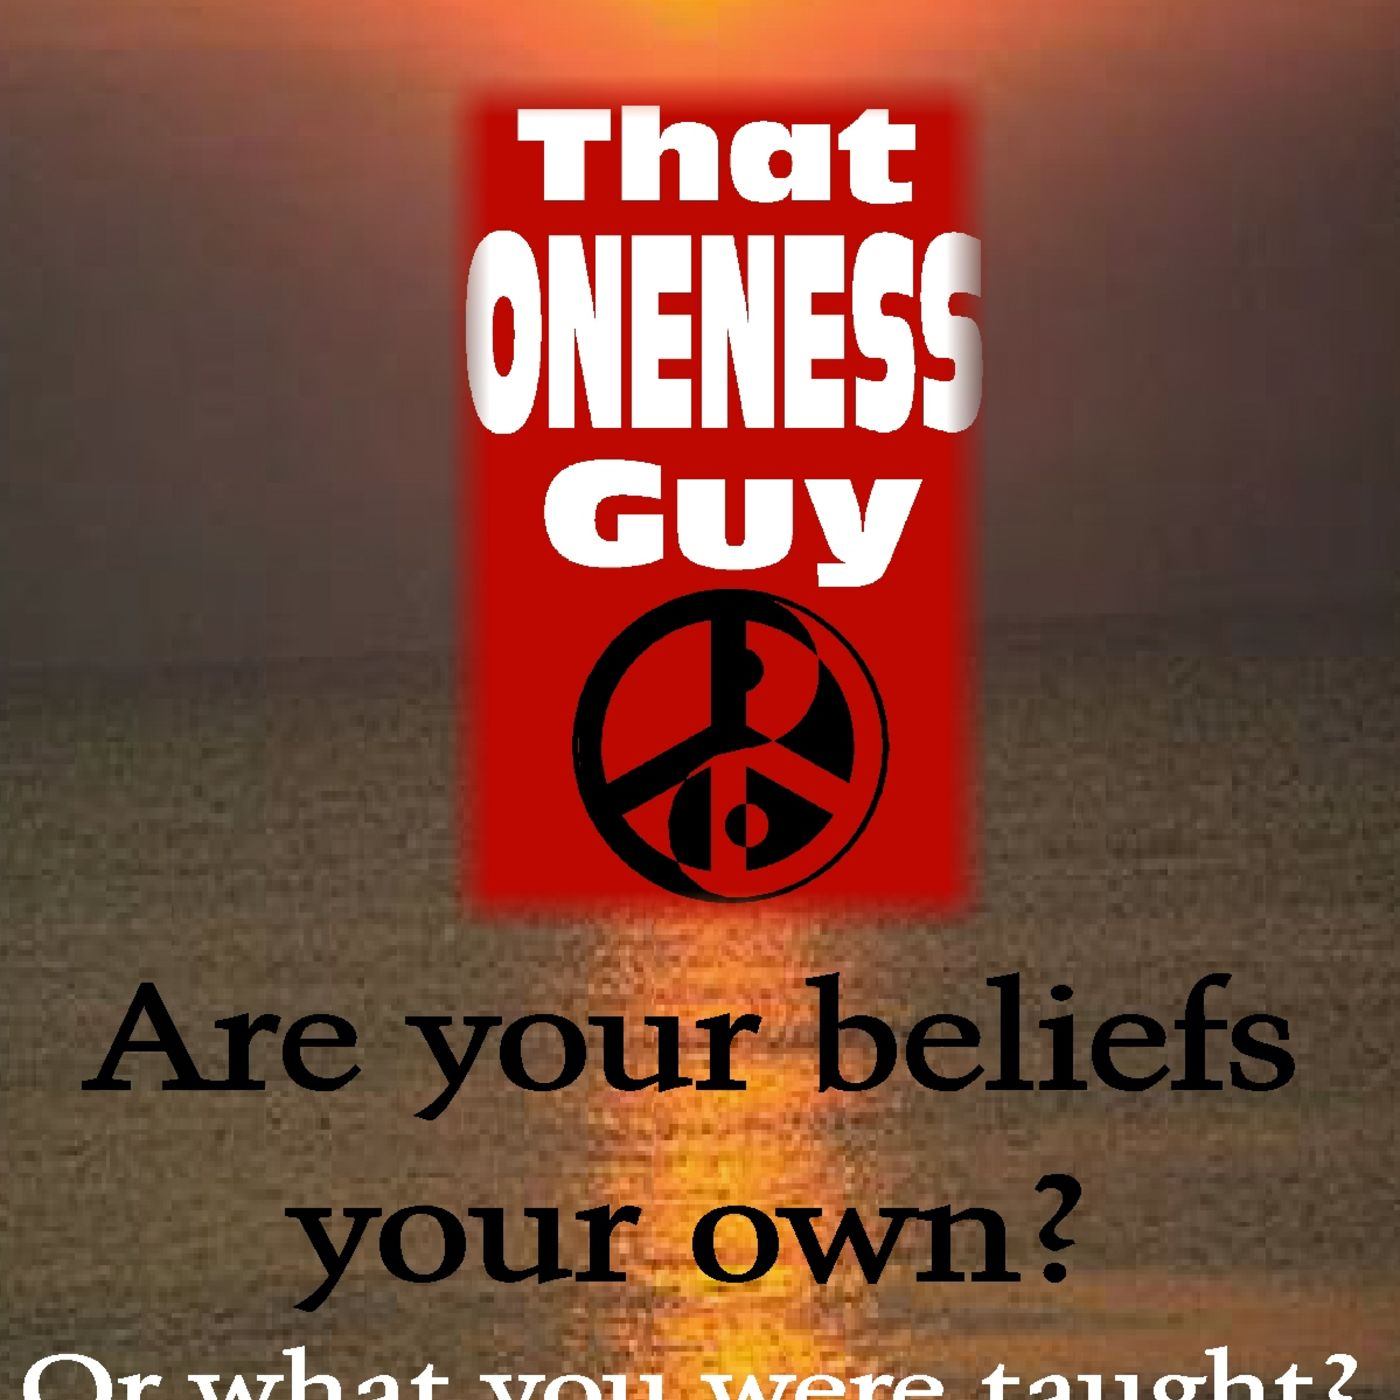 Oneness asks: 'Are your beliefs your own? Or what you were taught?'